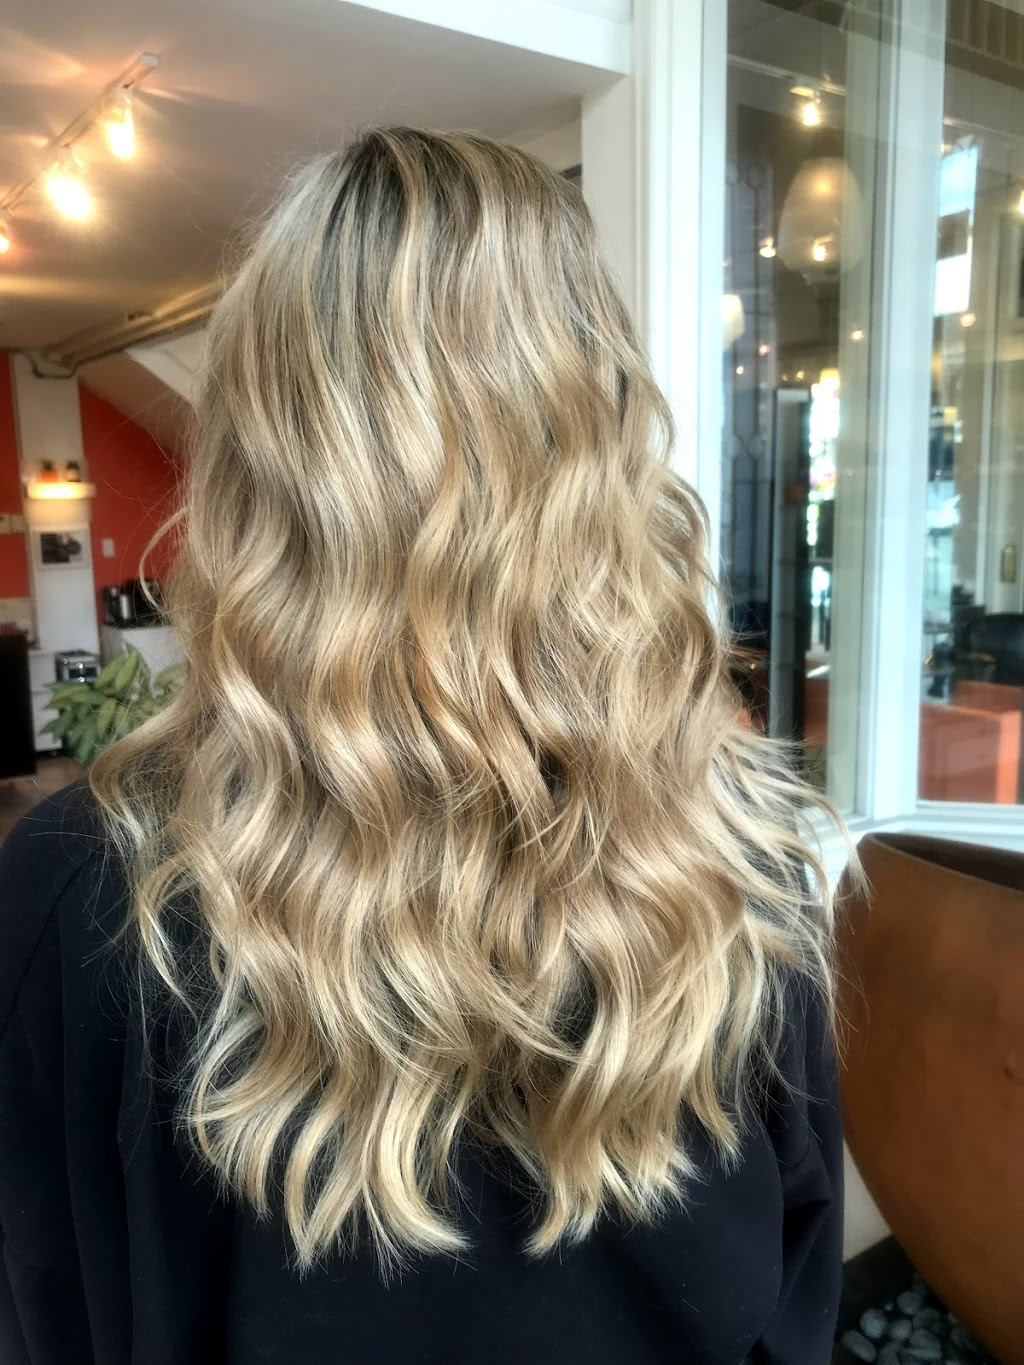 Kazen Hair James Bay | hair care | 230 Menzies St #105, Victoria, BC V8V 2G7, Canada | 7782654277 OR +1 778-265-4277